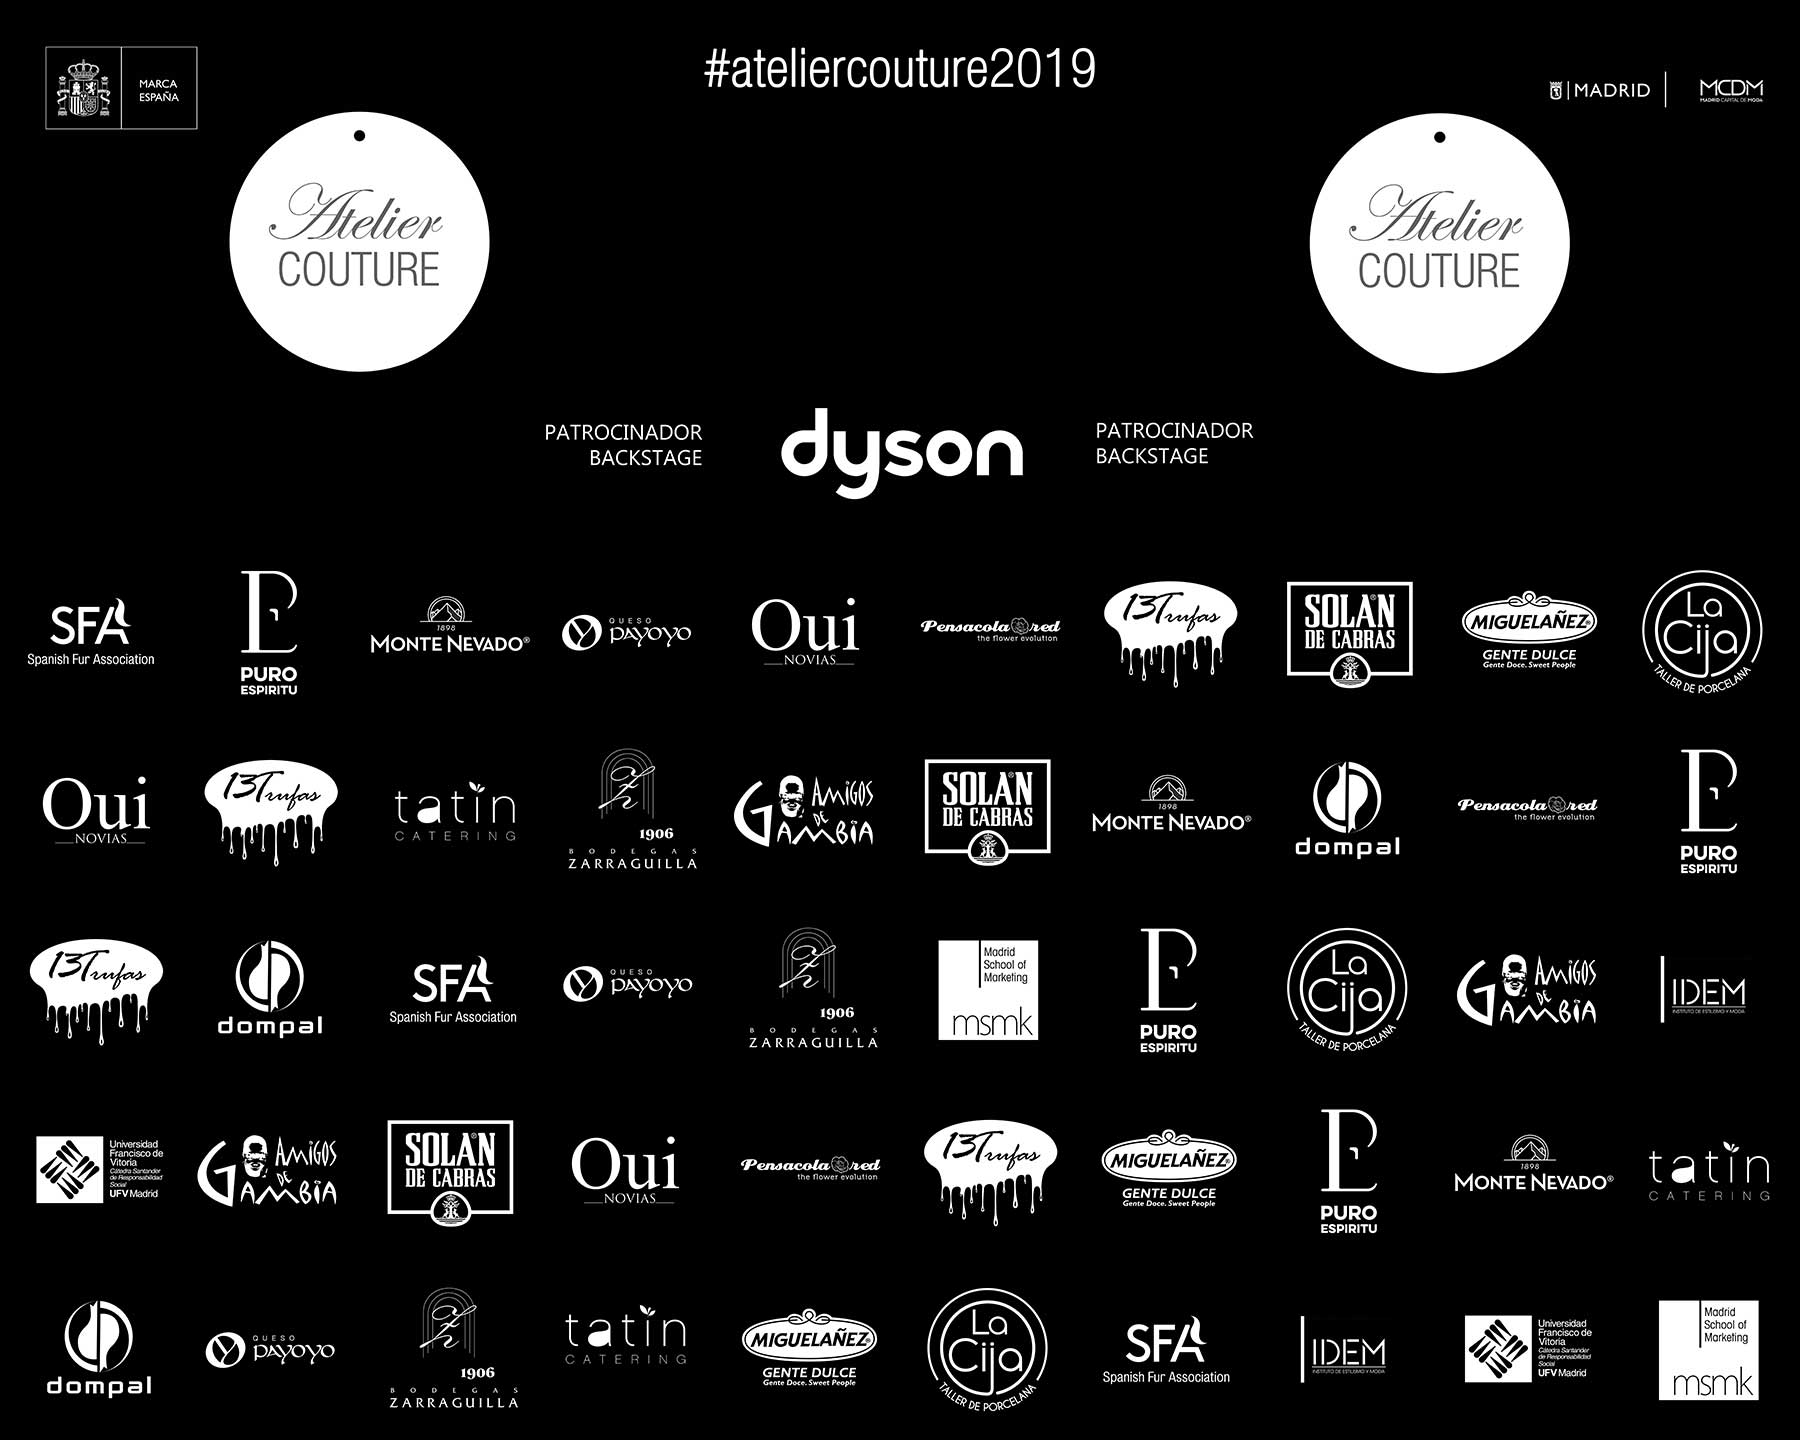 Photocall Atelier Couture 2019